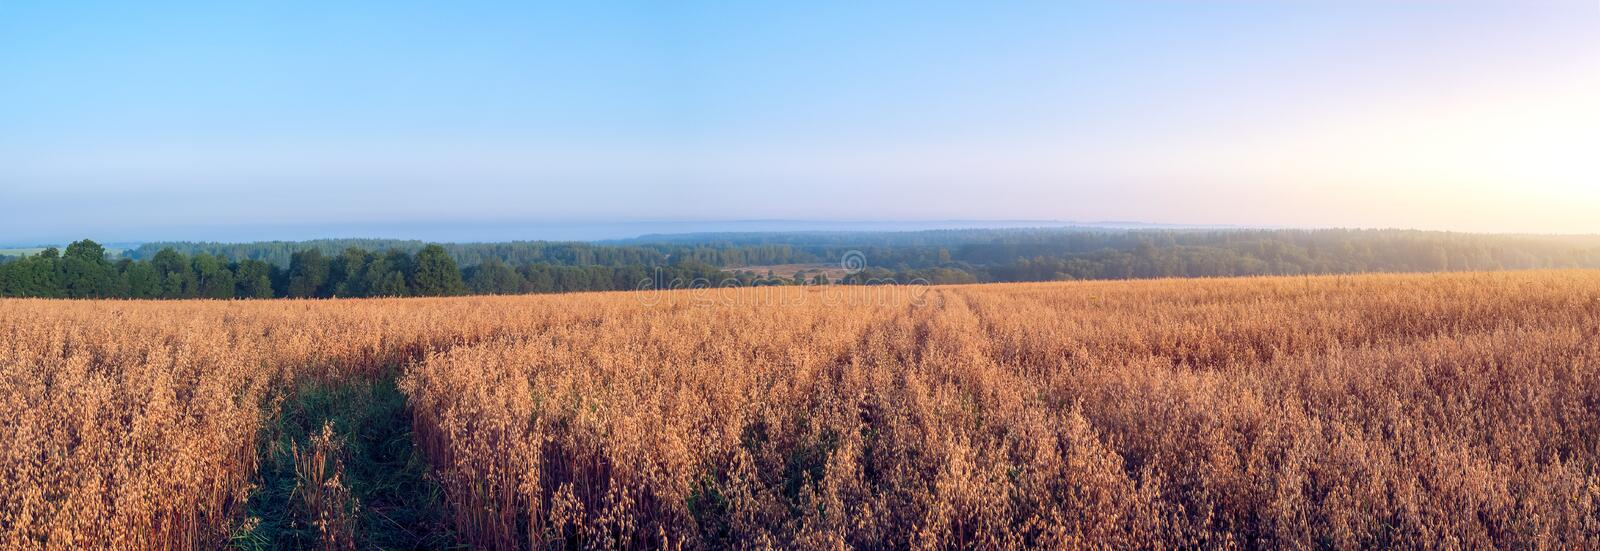 Rural landscape at dawn with oat fields stock photo